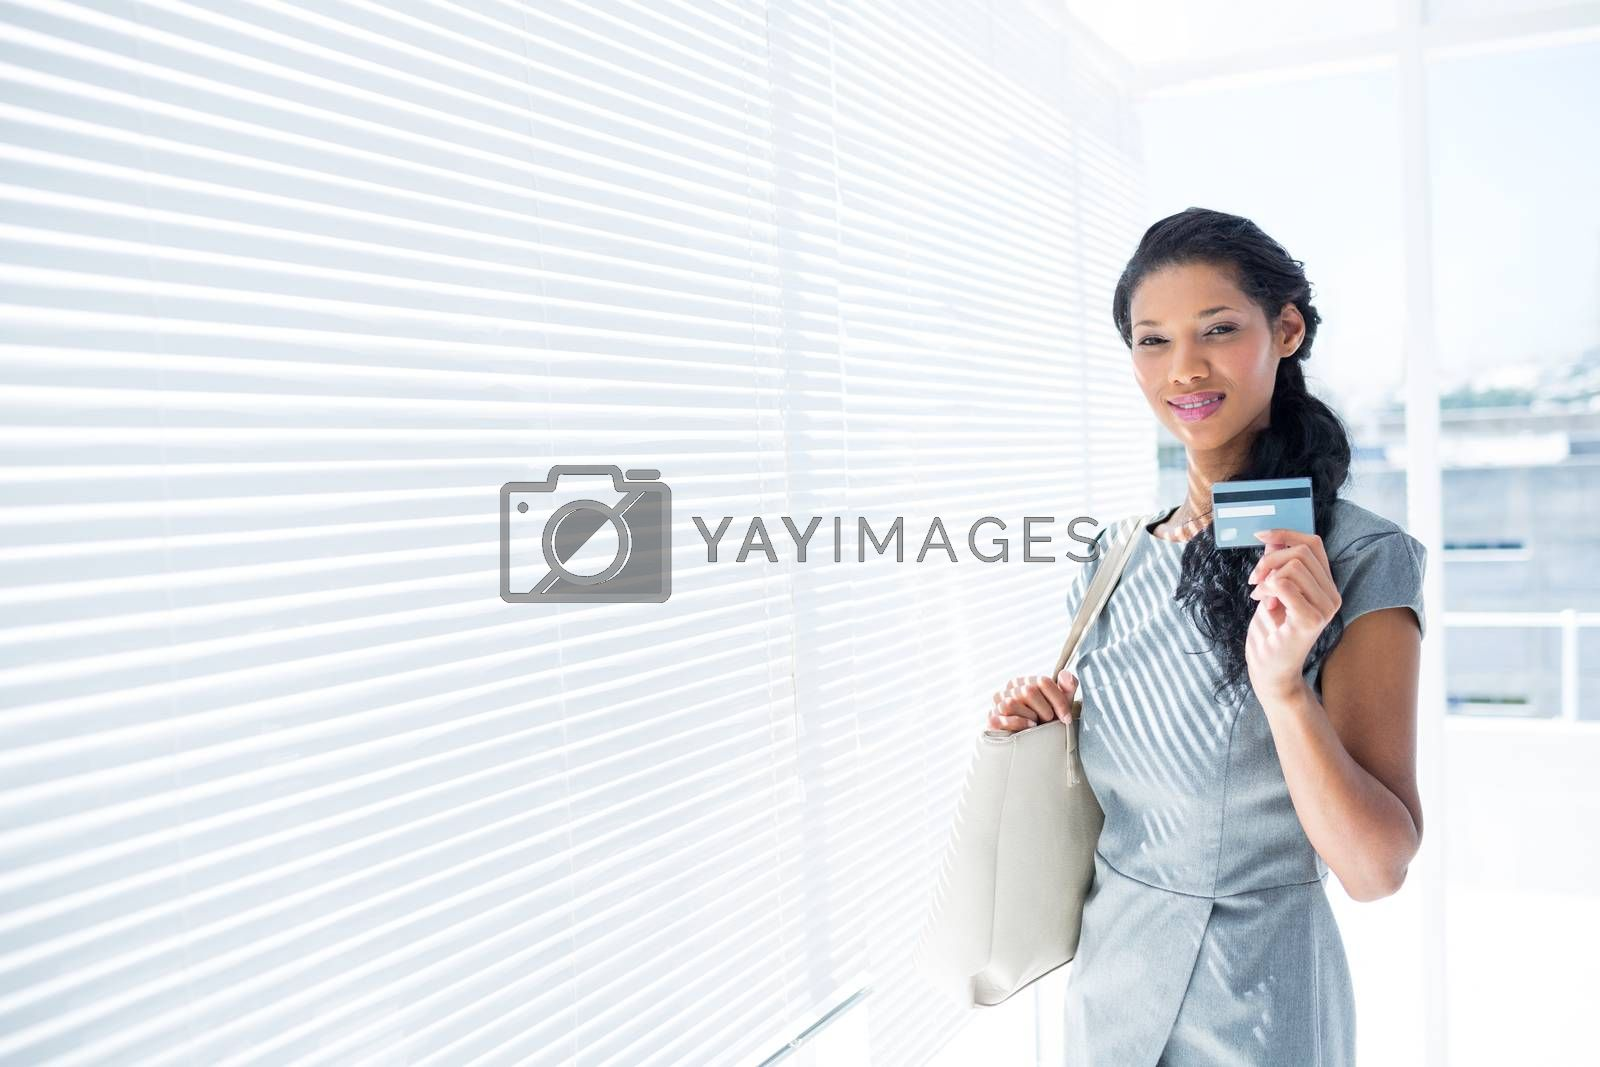 Royalty free image of Smiling businesswoman looking at camera with credit card by Wavebreakmedia